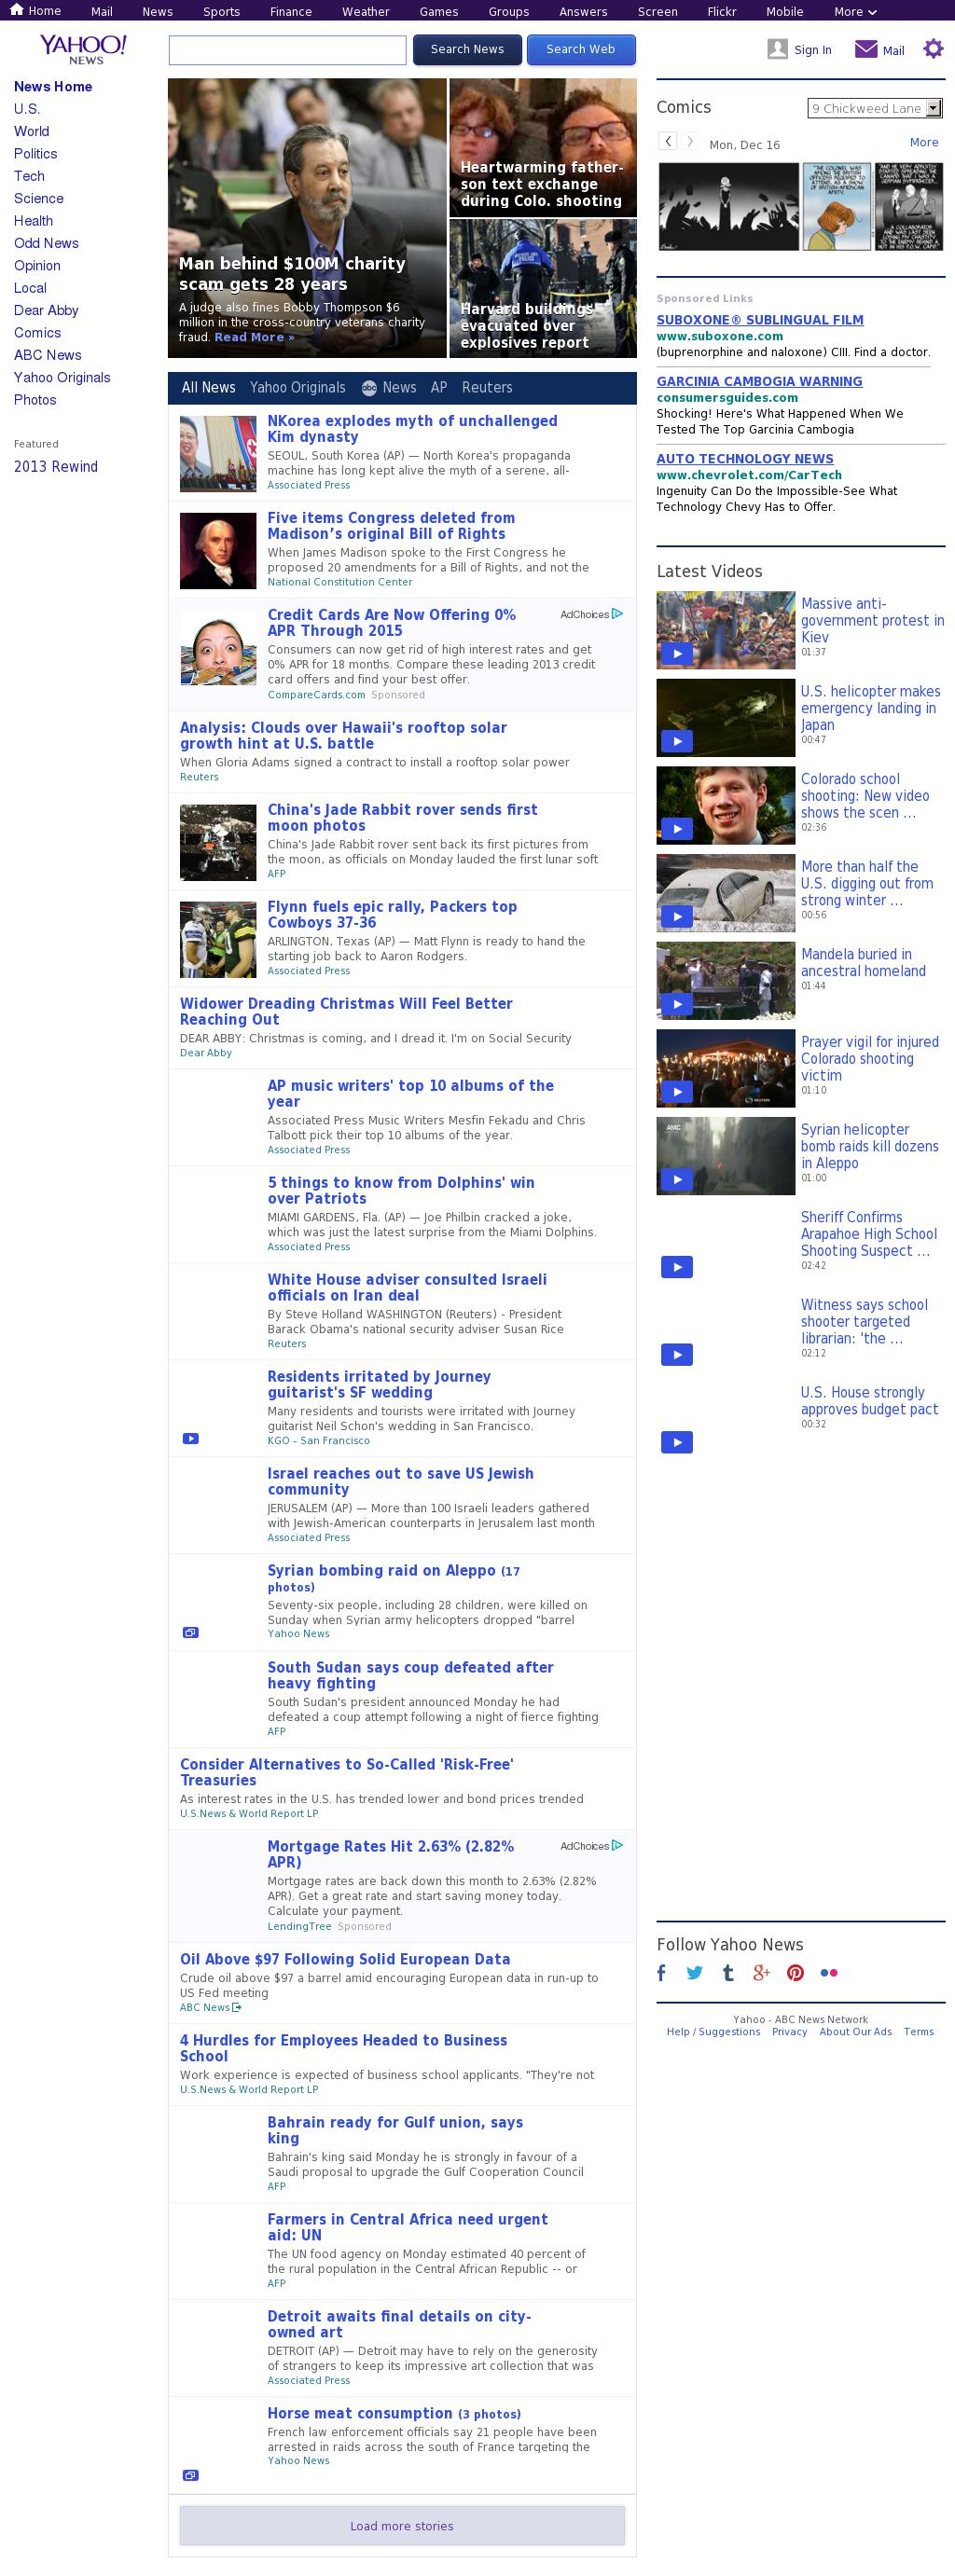 Yahoo! News at Monday Dec. 16, 2013, 5:18 p.m. UTC